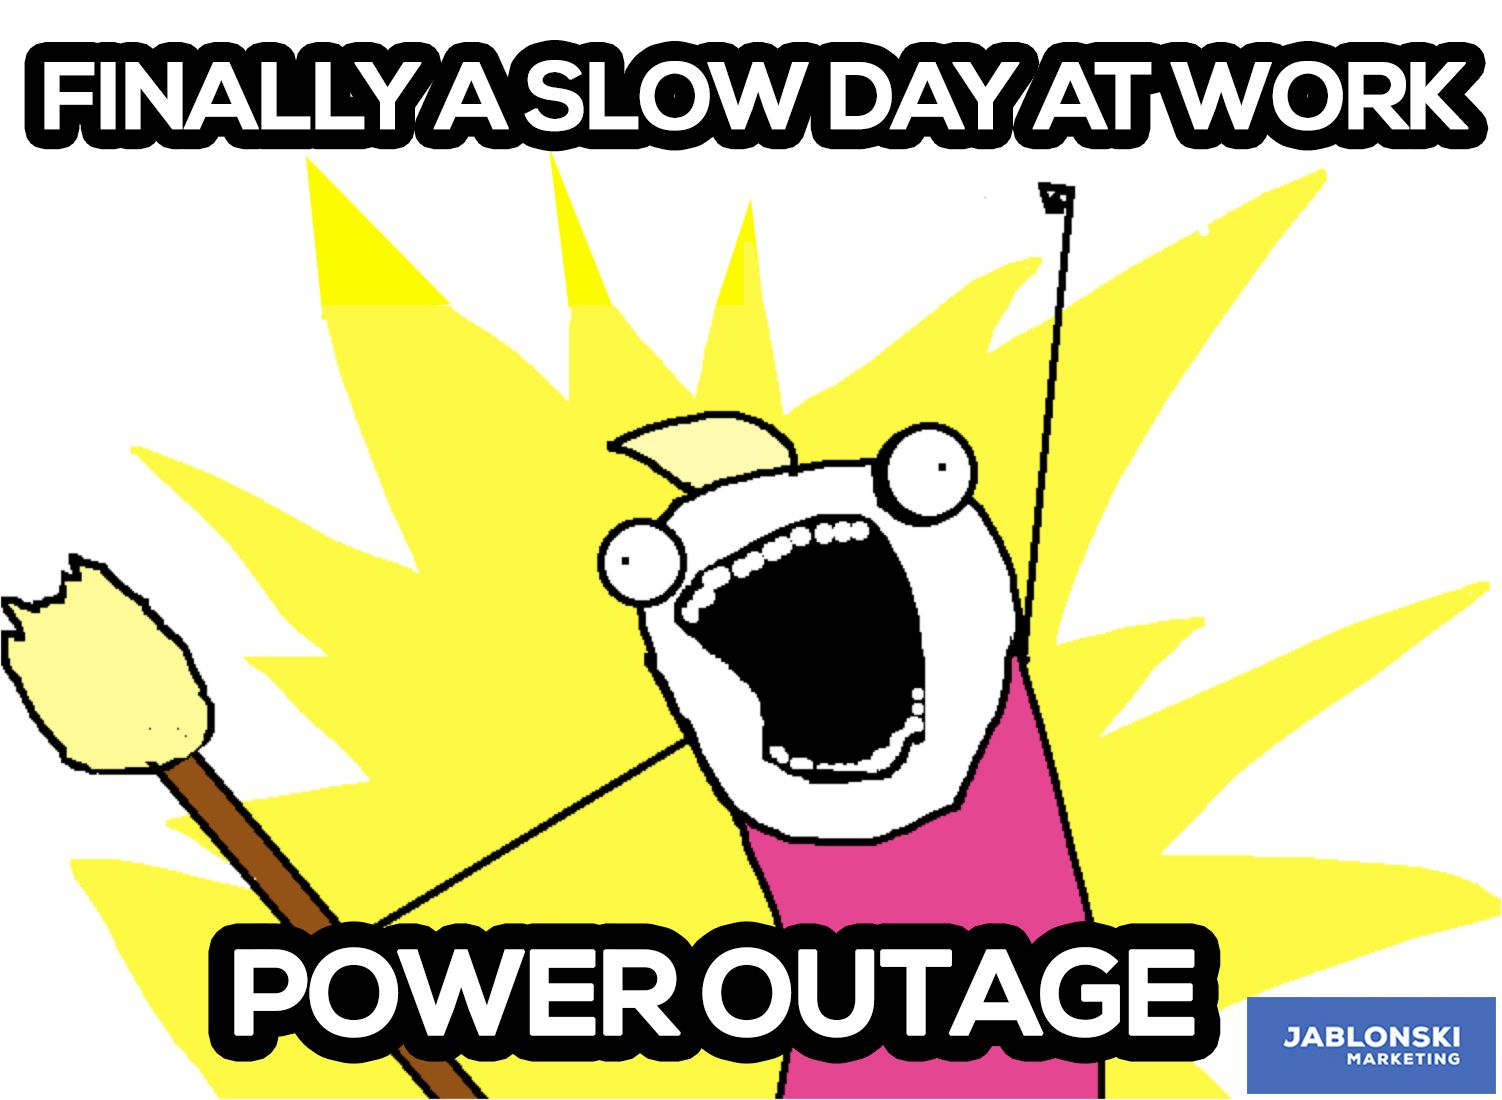 Finally A Slow Day At Work Power Outage Meme Workmeme Marketing Humor Funny Happy Rage Hyperbole And A Half Pumpkin Spice Clean All The Things